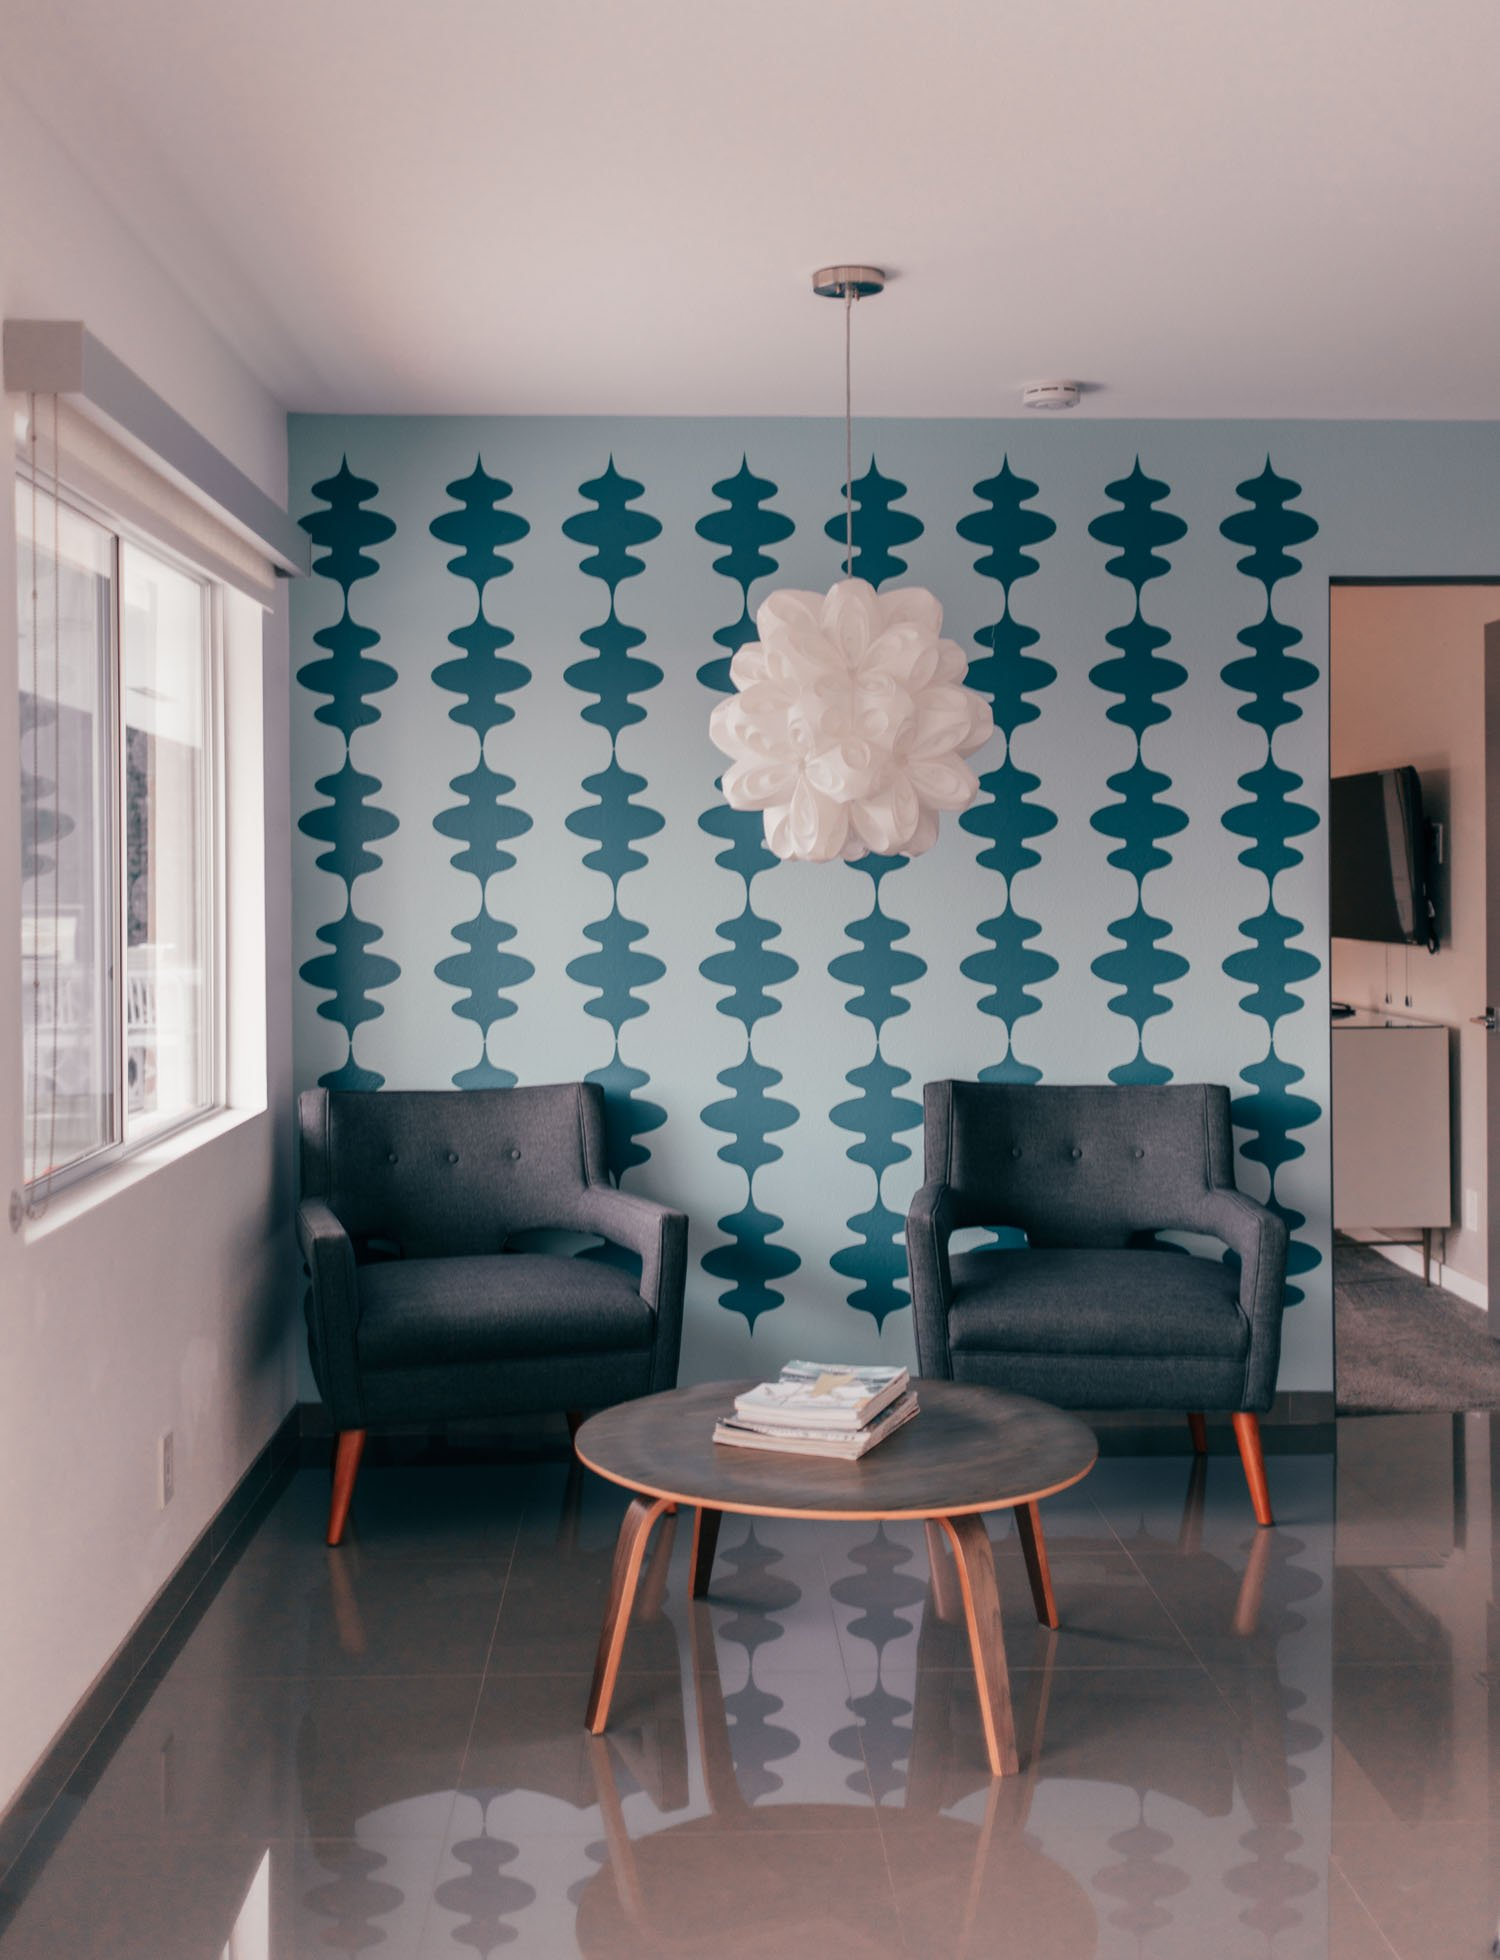 Elizabeth Hugen of Lizzie in Lace shares mid-century modern Palm Springs home decor